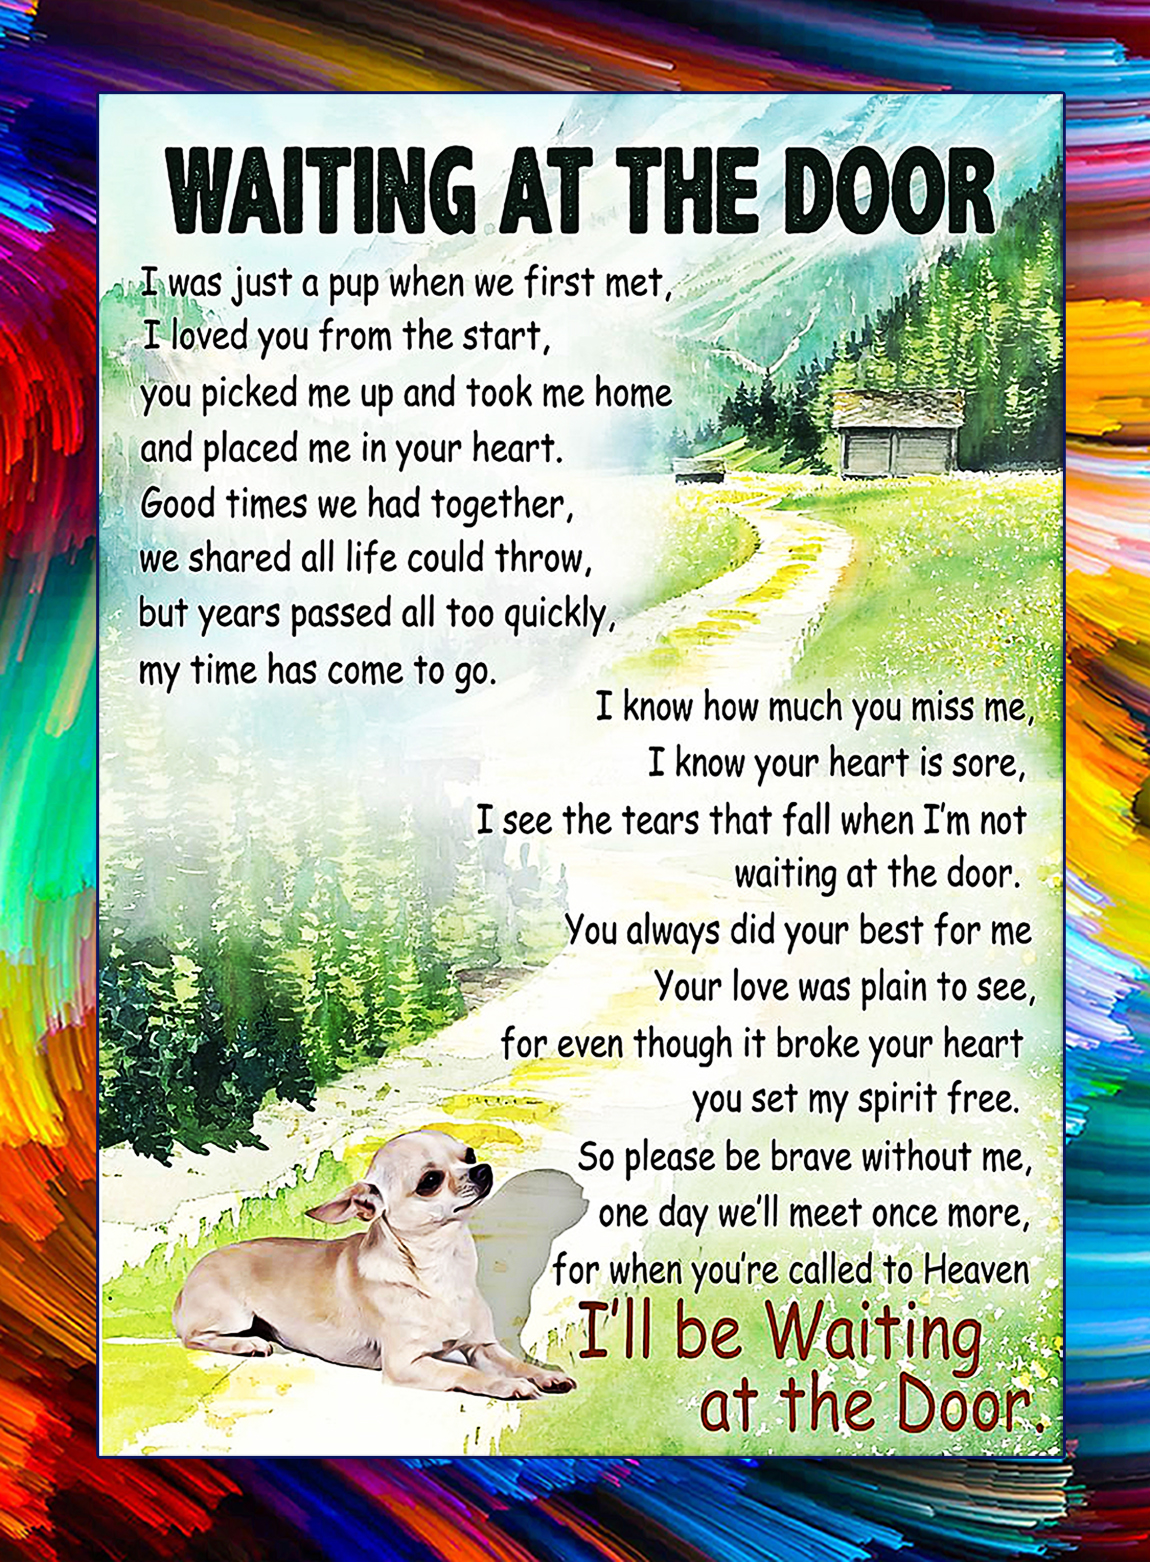 Chihuahua waiting at the door poster - A3